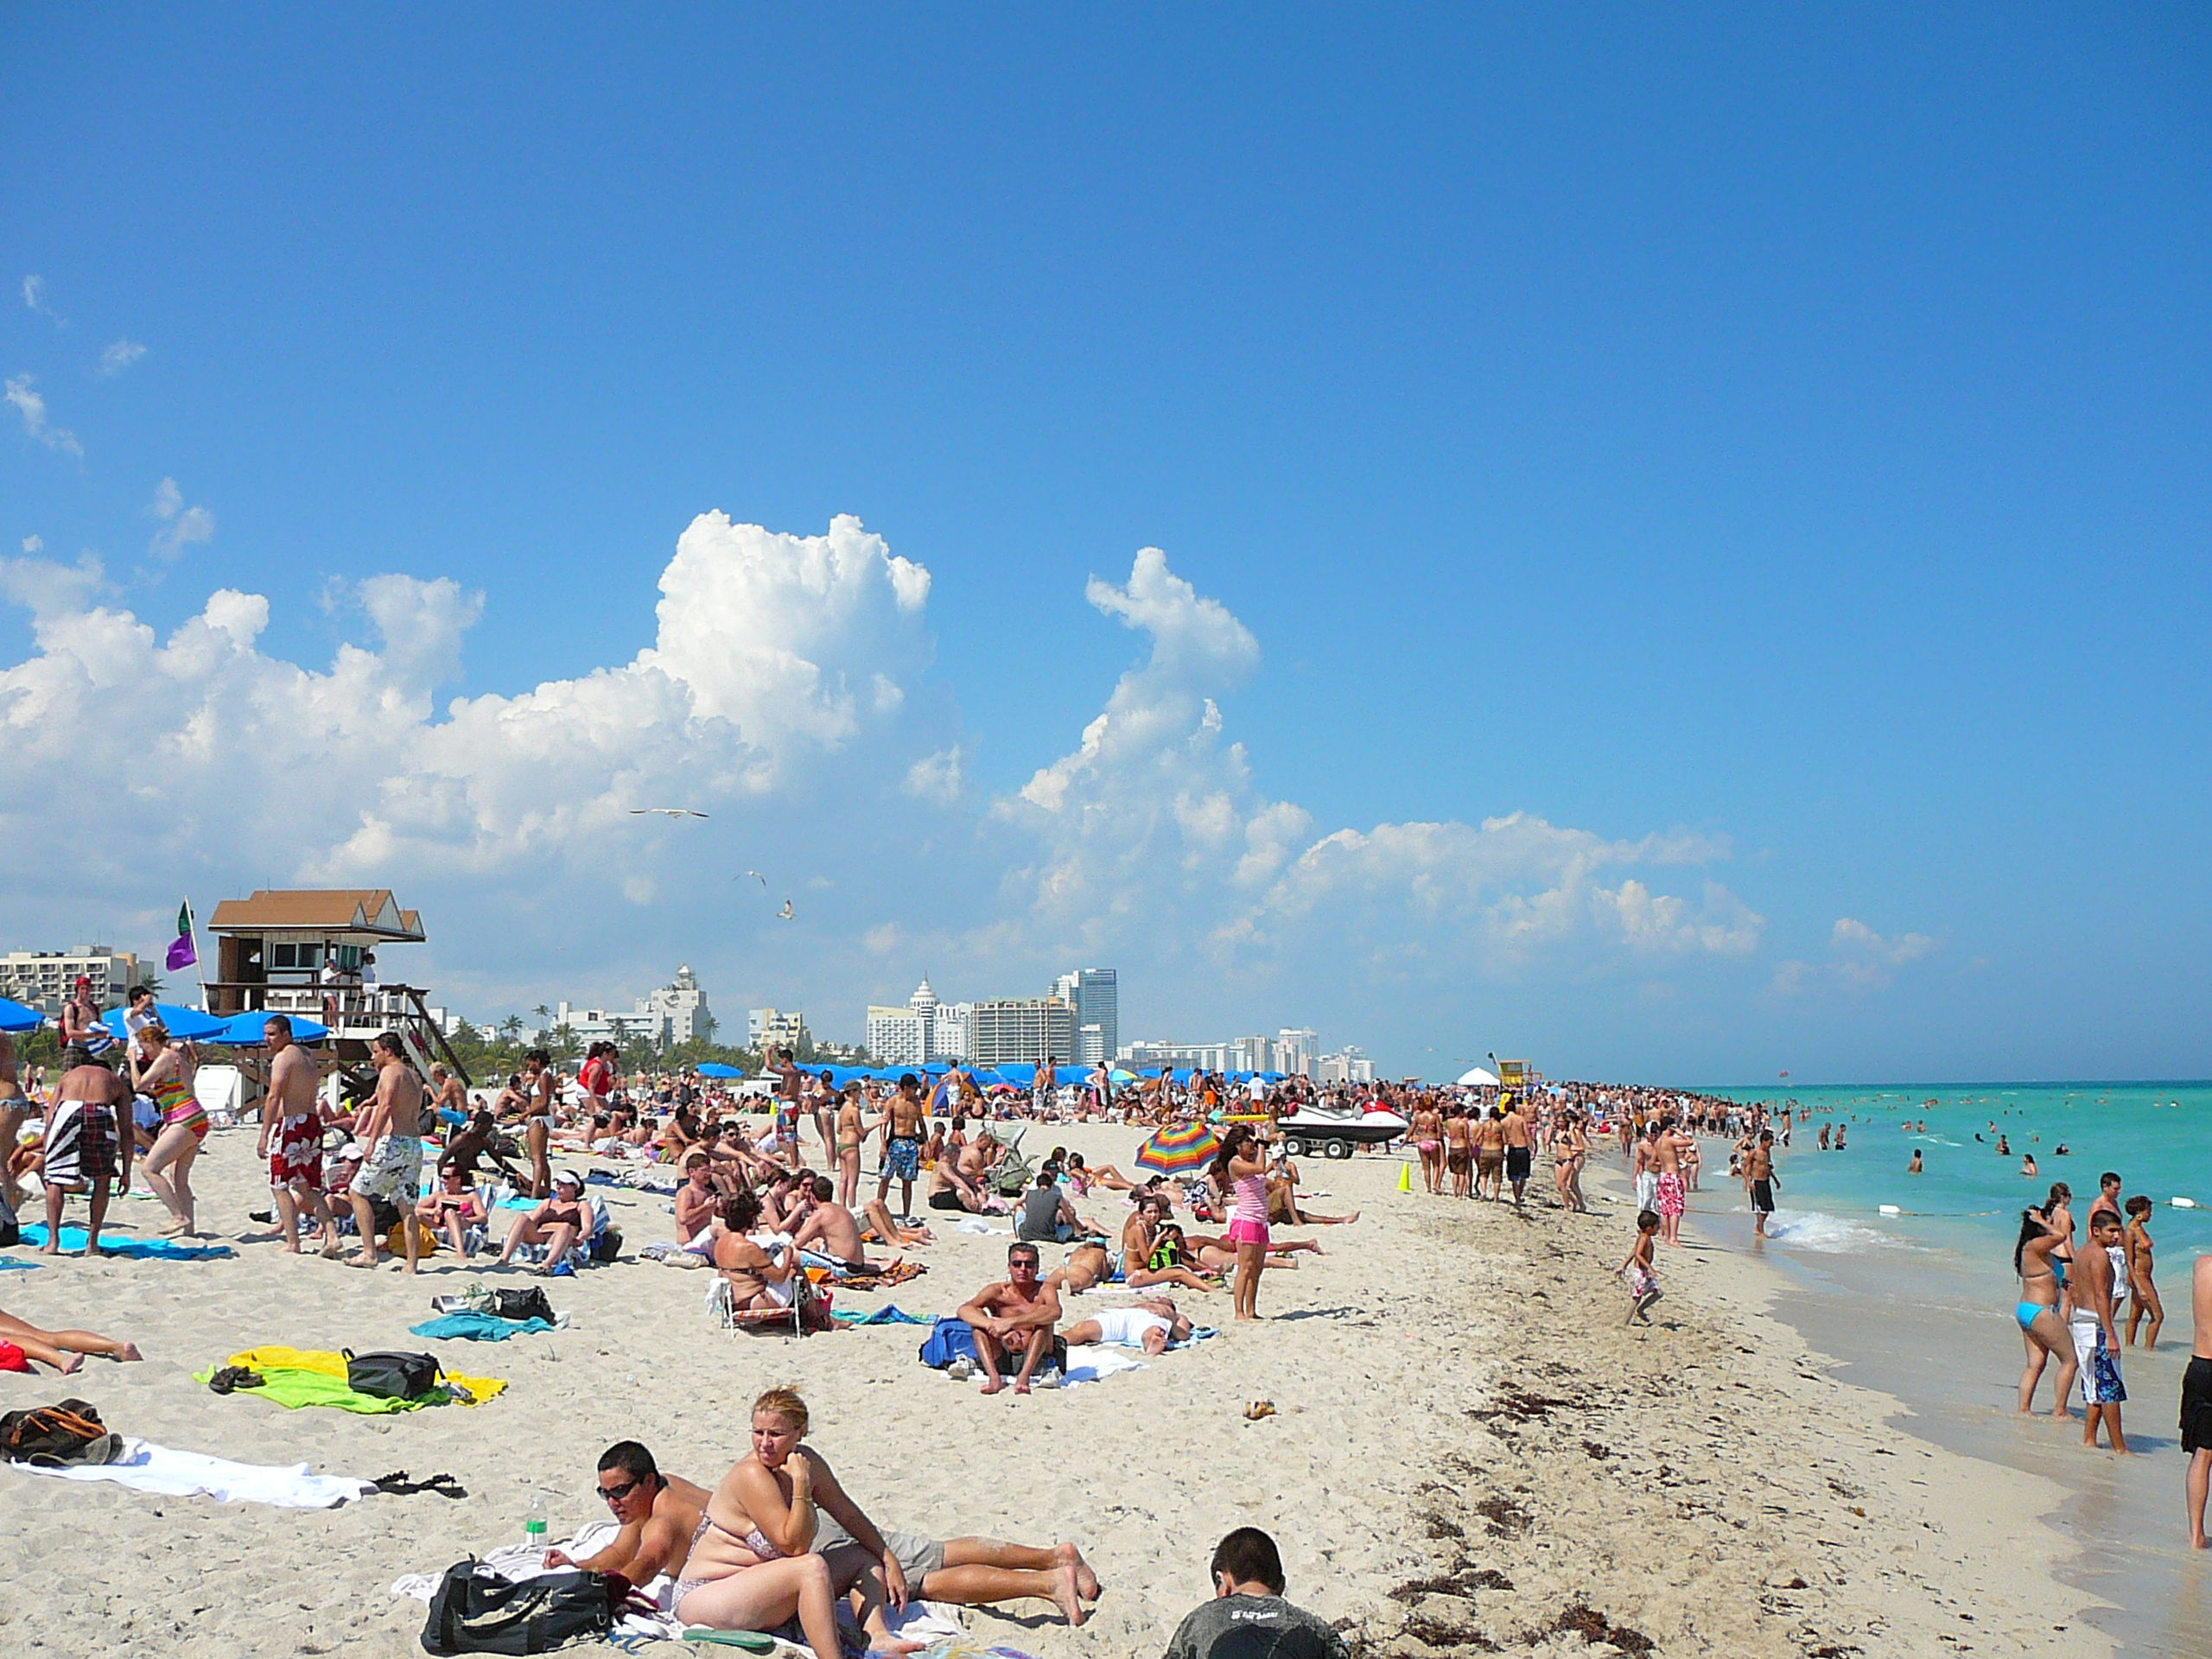 South Beach - Top Tourist Locations To Visit In Miami